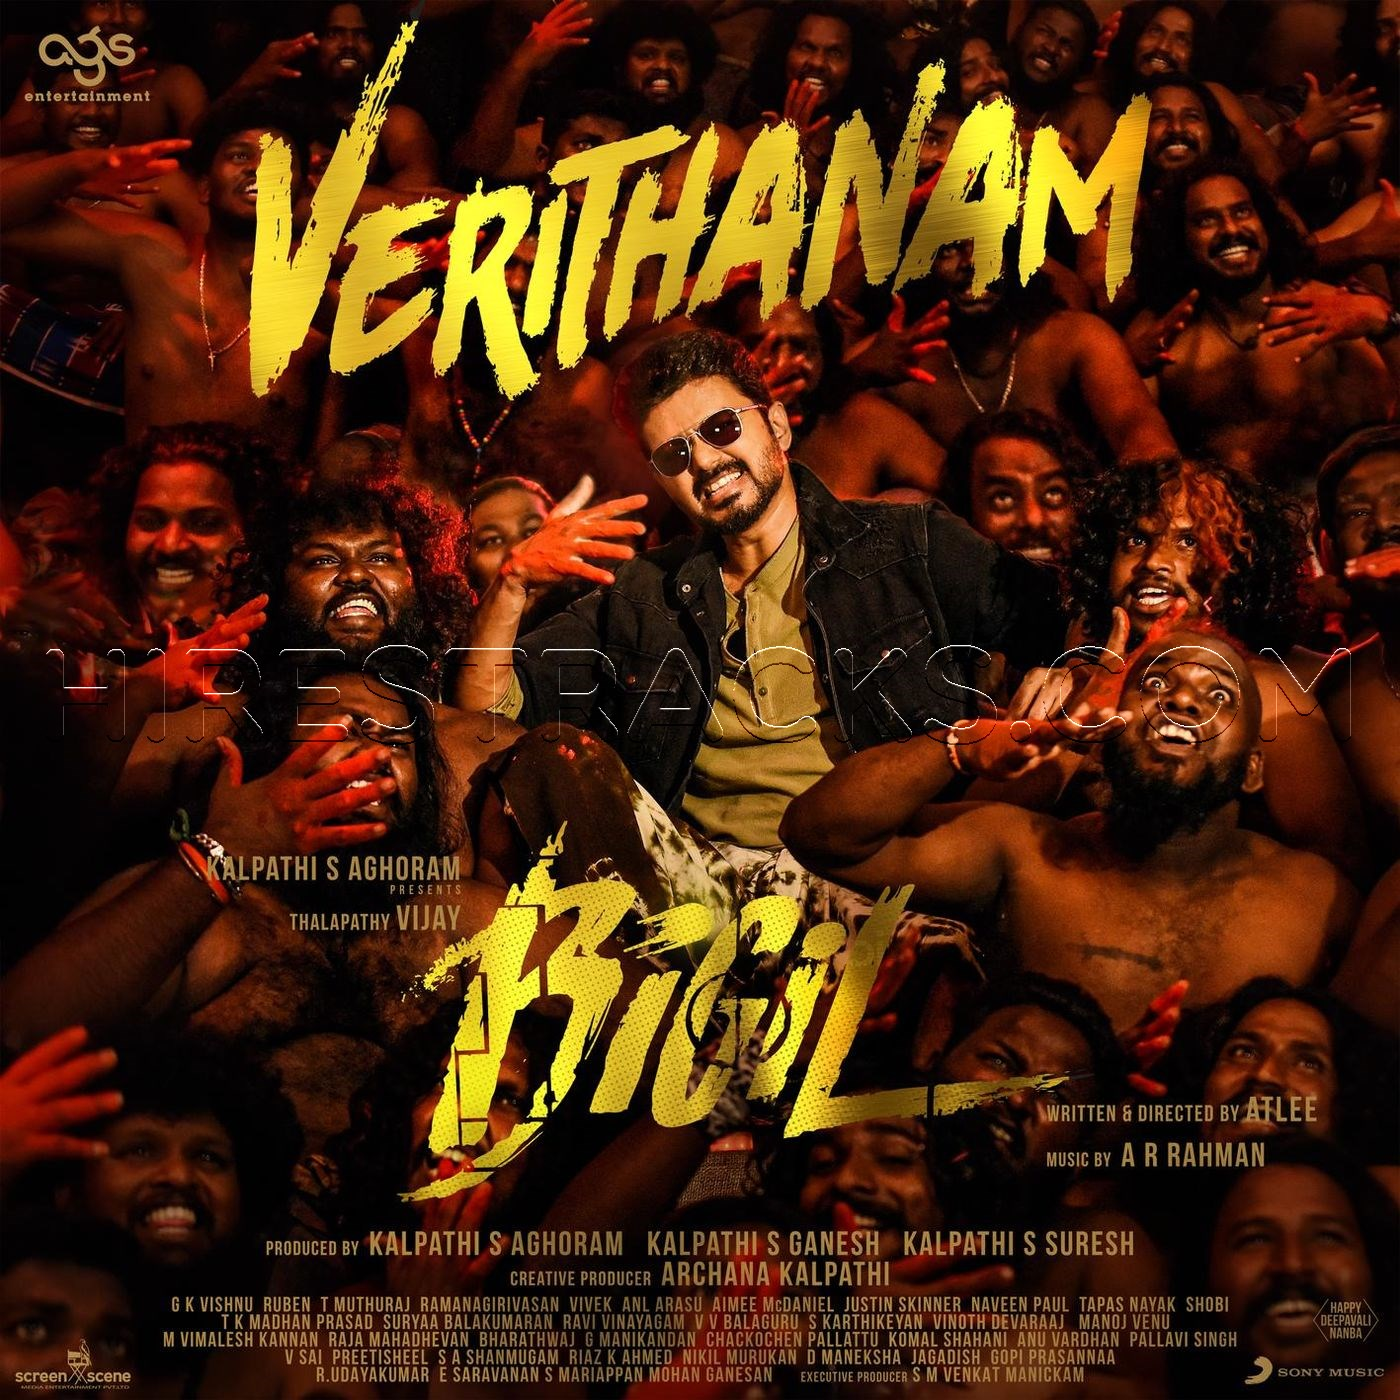 [FREE] Verithanam (From Bigil) (2019) (A.R. Rahman) (Sony Music) [Digital-DL-FLAC]